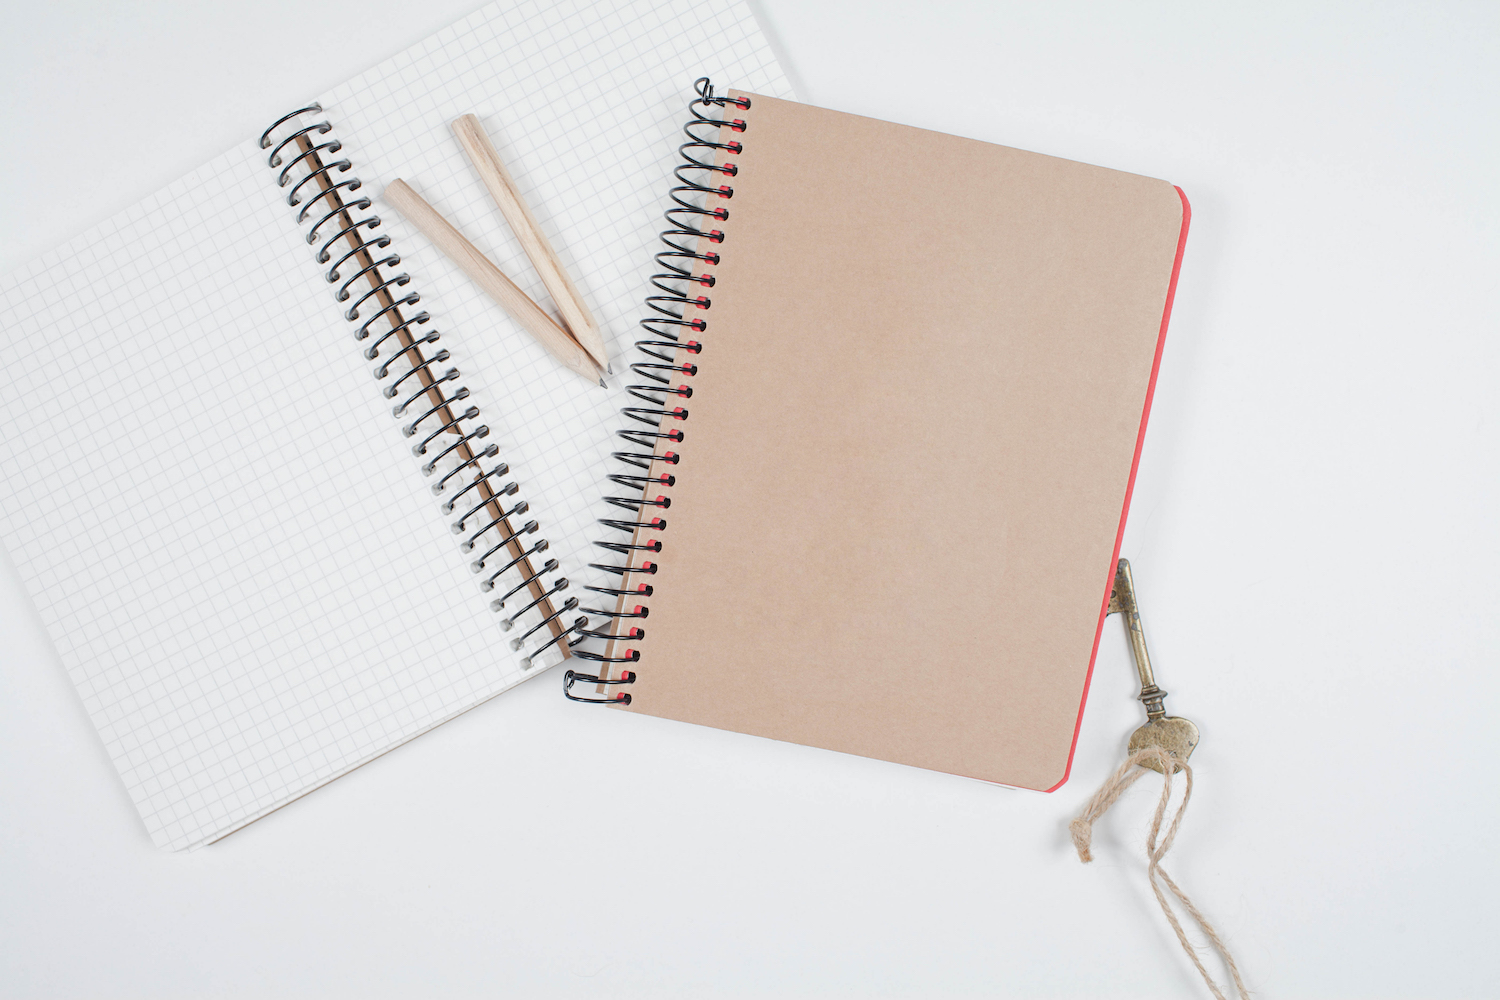 Old notebooks and pencils, key on white table example image 1